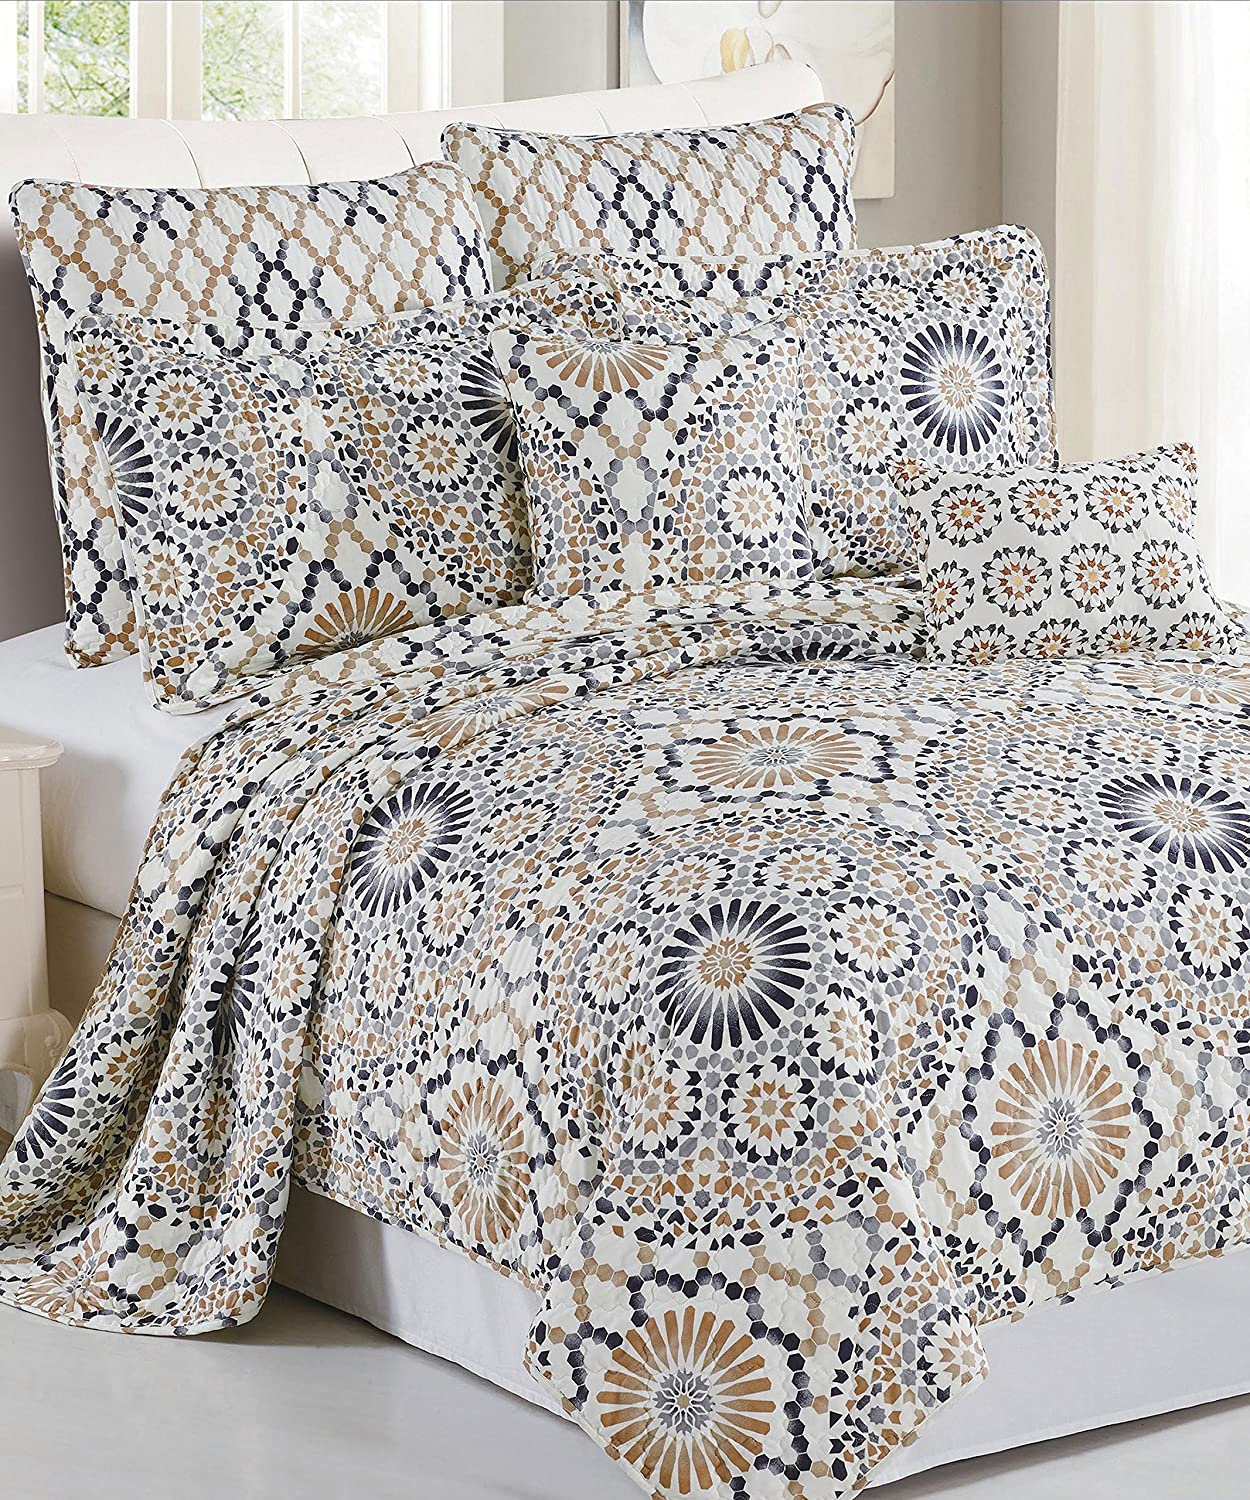 Serenta 7 Piece Printed Microfiber Tradewinds Bedspread Quilts Set, King